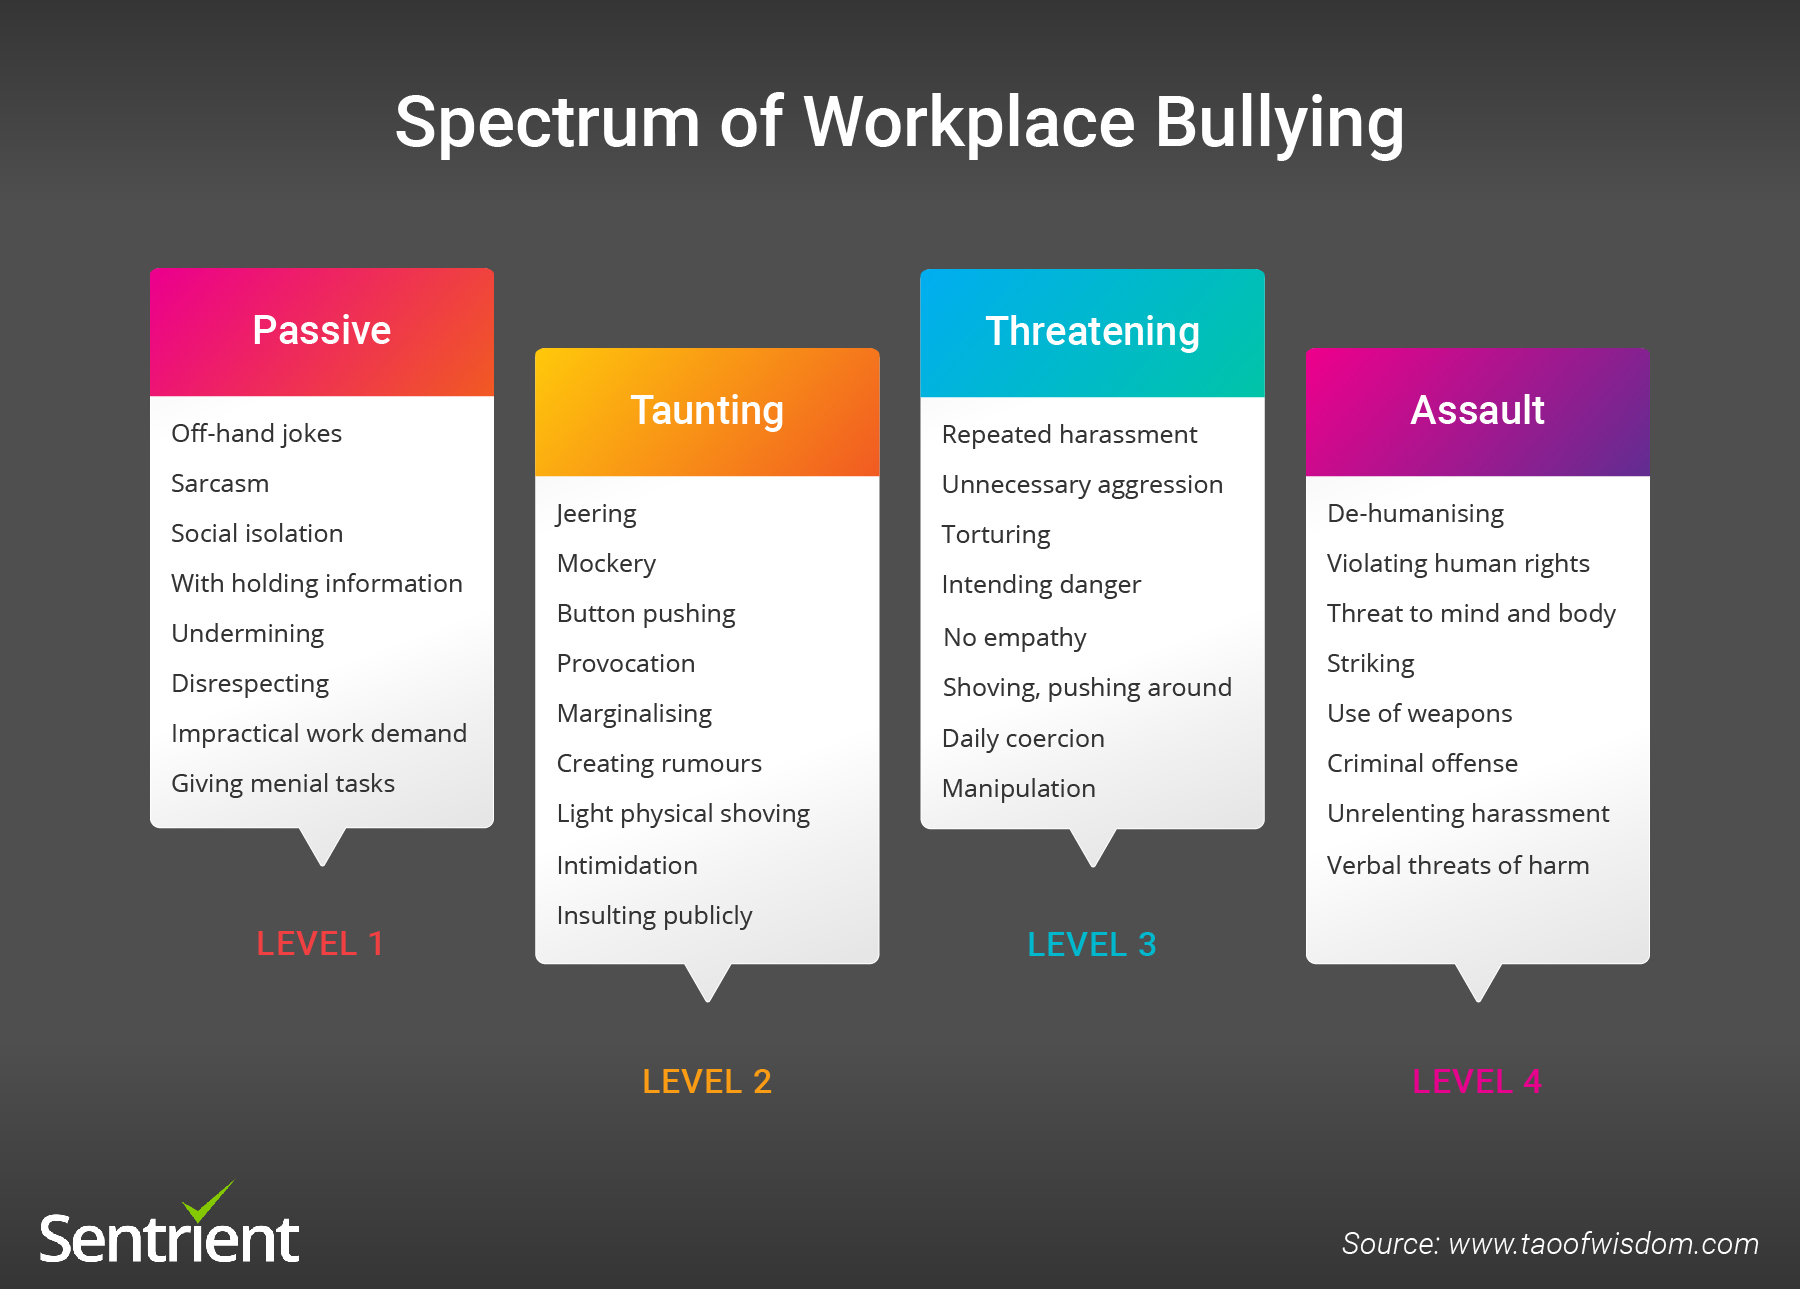 Spectrum of Workplace Bullying